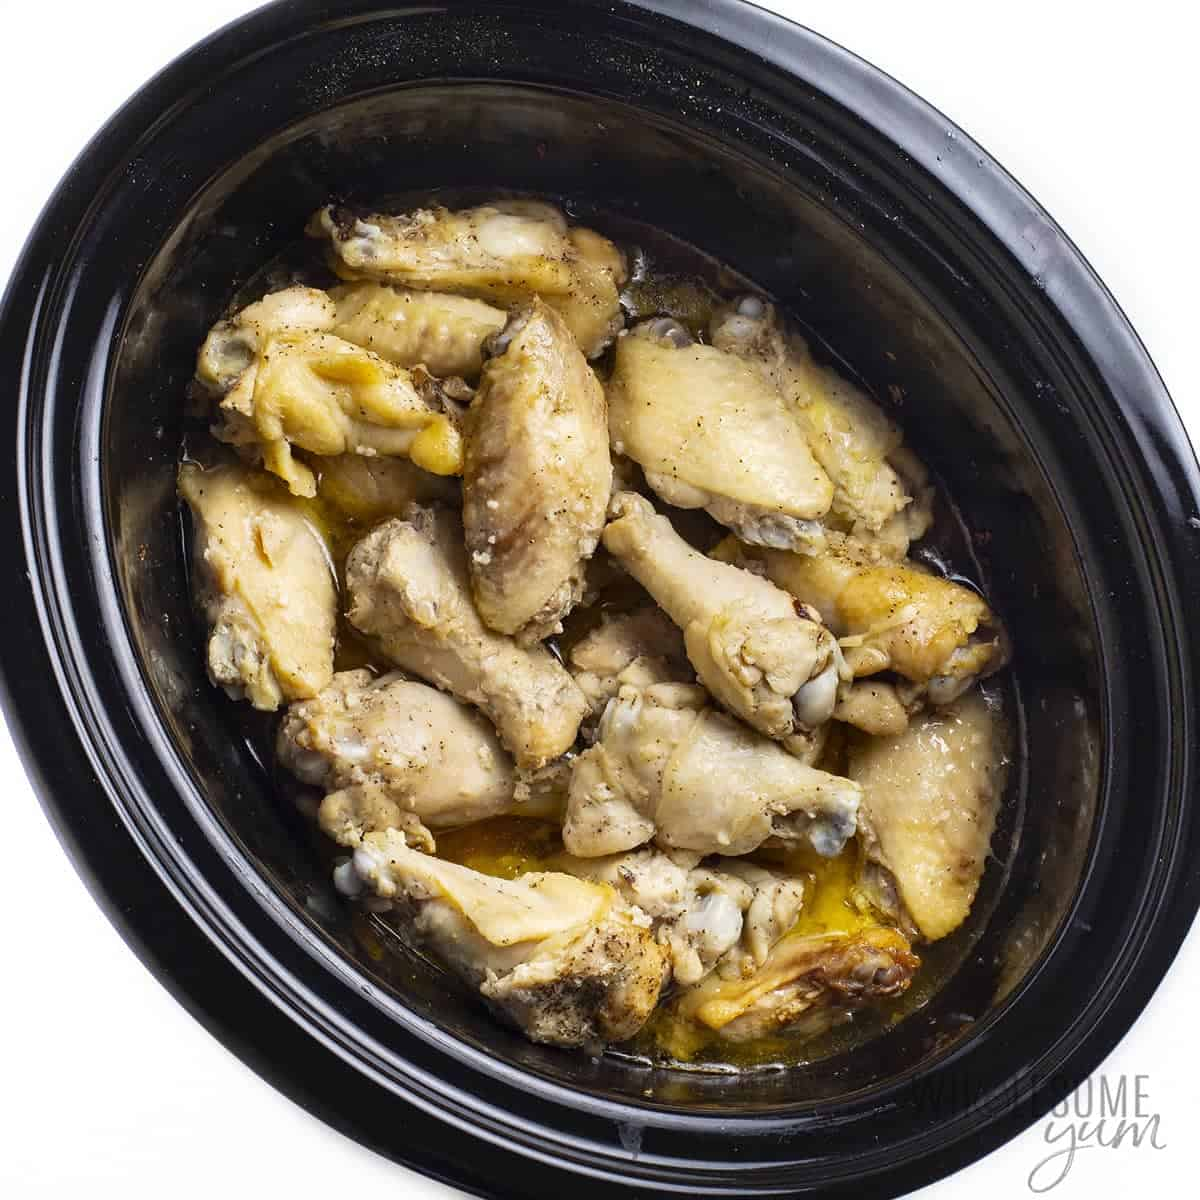 Cooked chicken wings in slow cooker